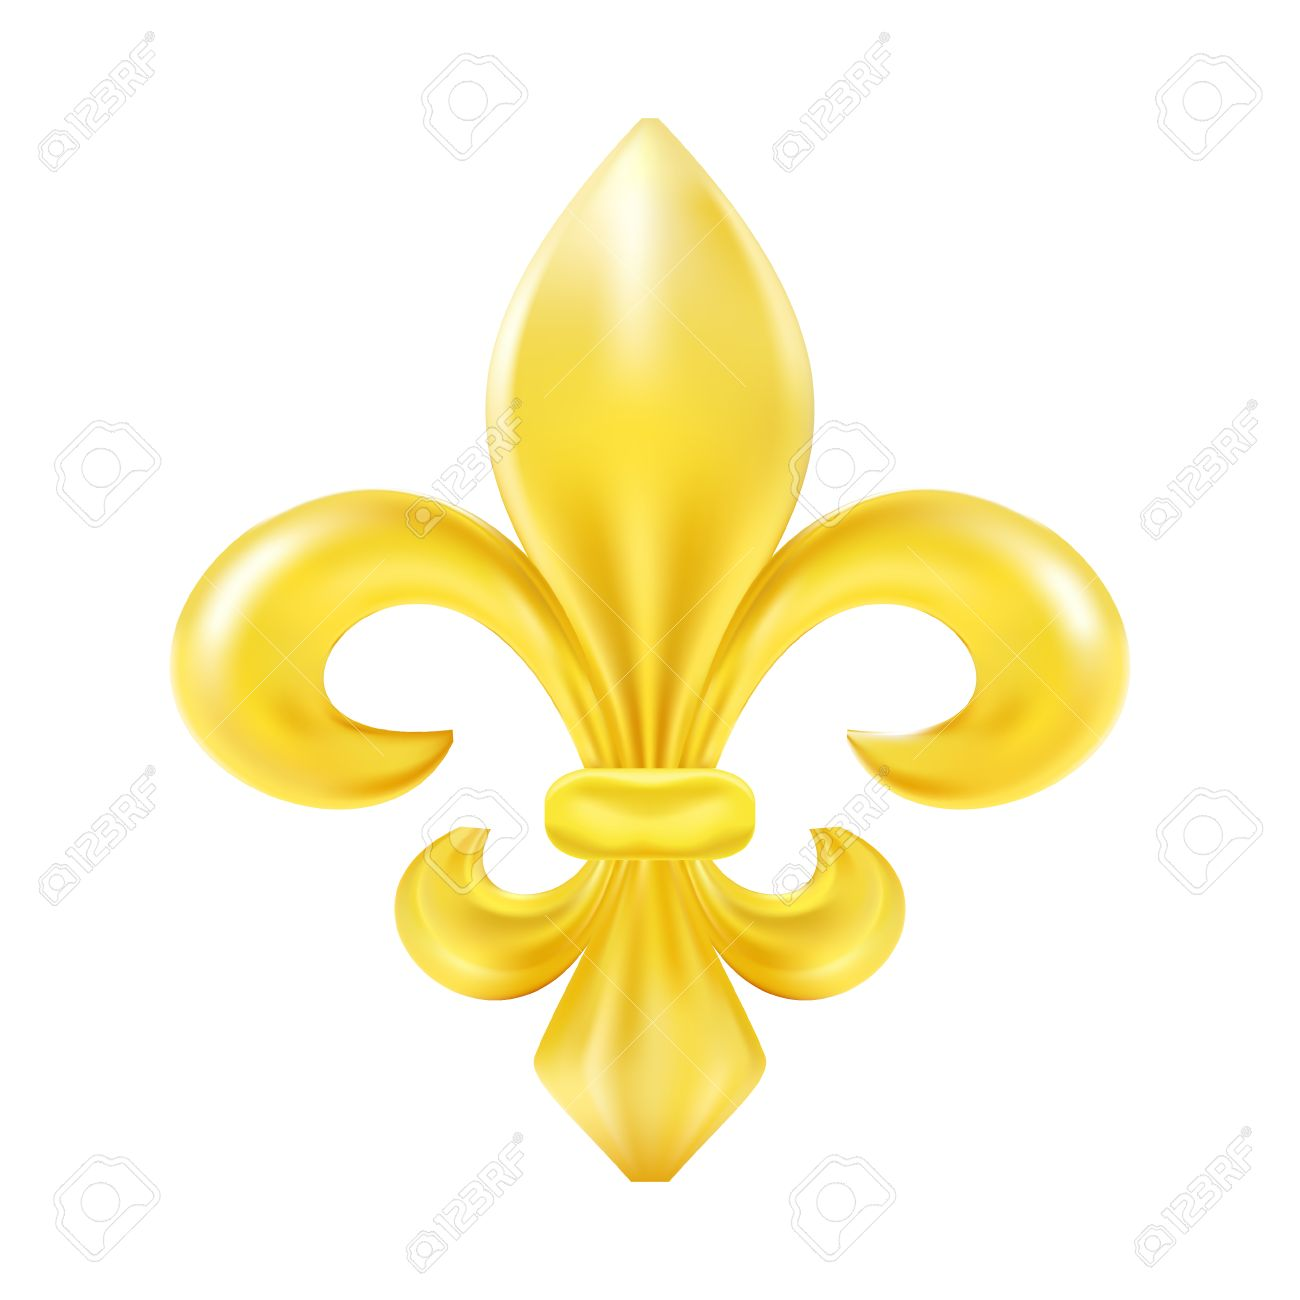 hight resolution of golden fleur de lis decorative design stock vector 39657525